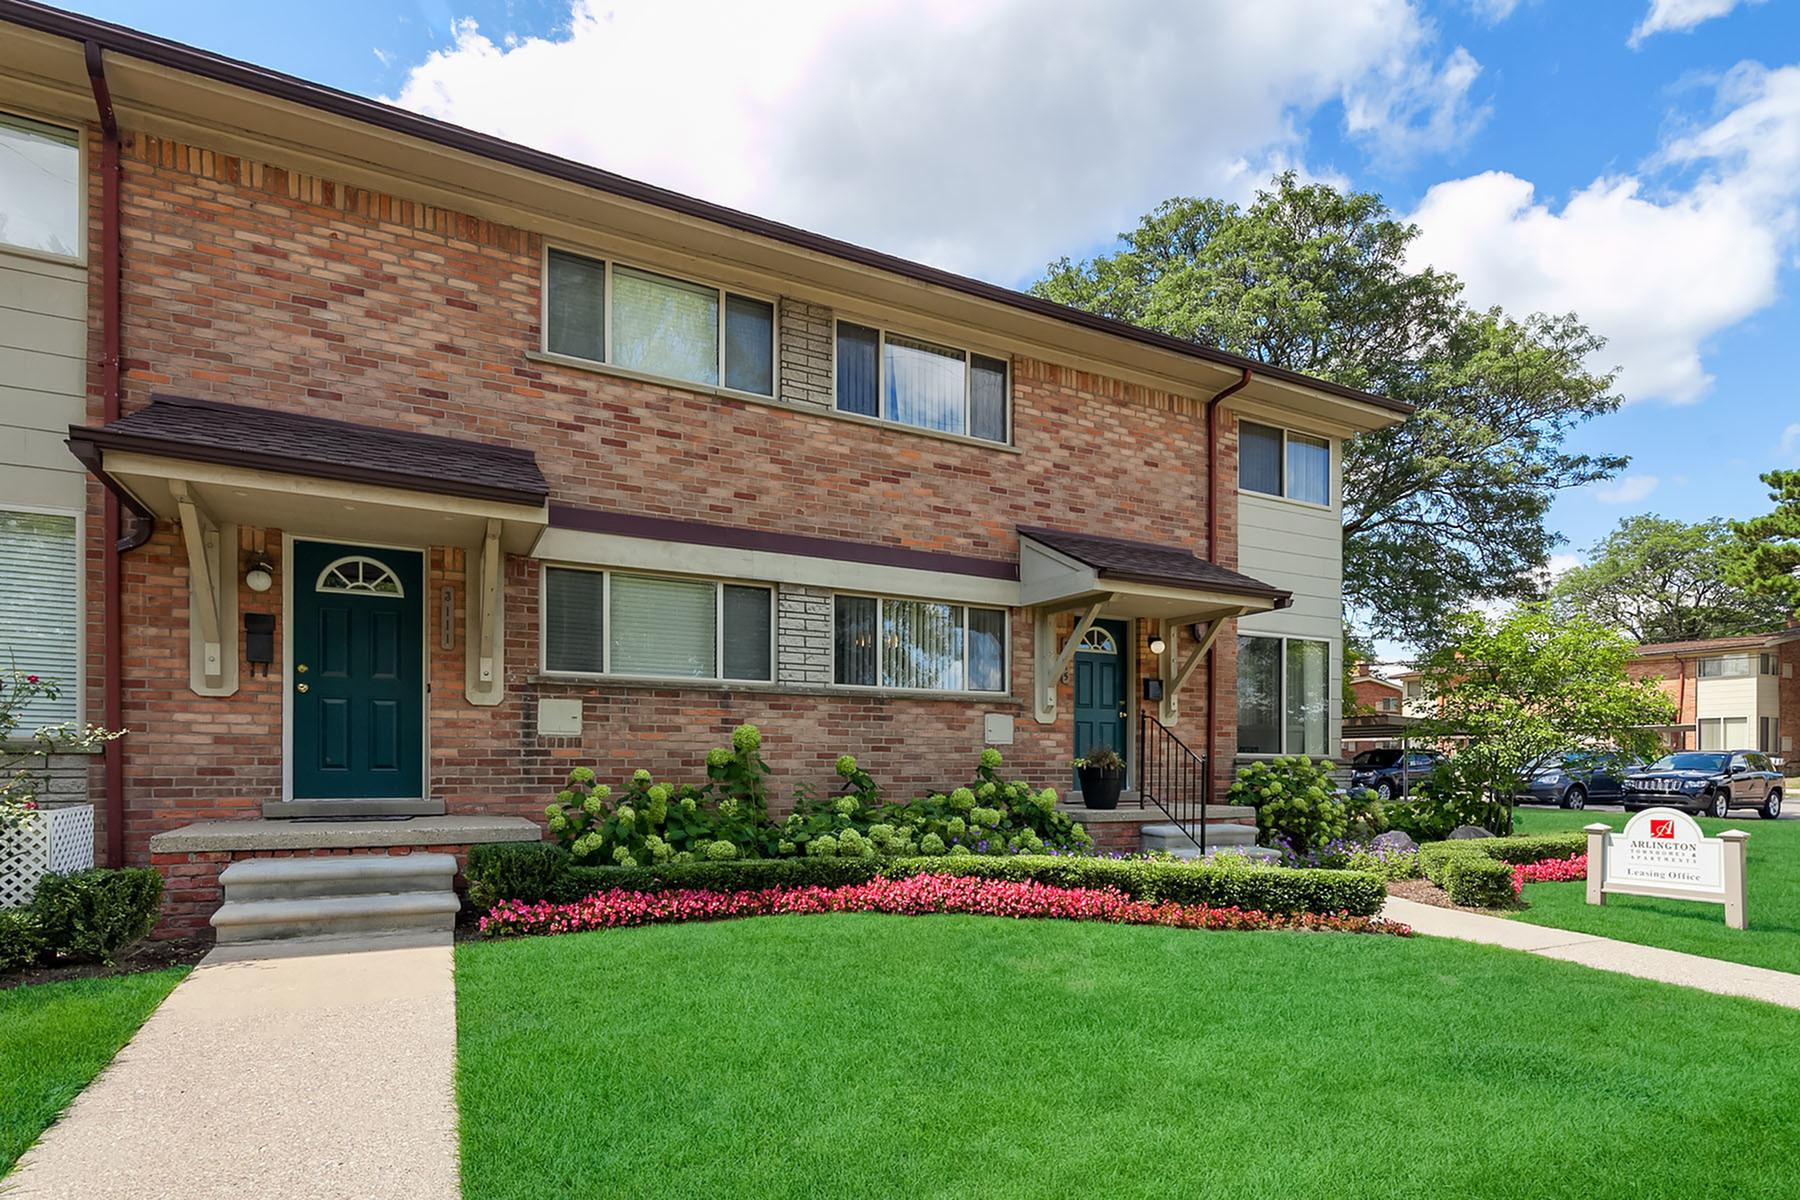 royal oak mi apartment rentals arlington townhomes apartments